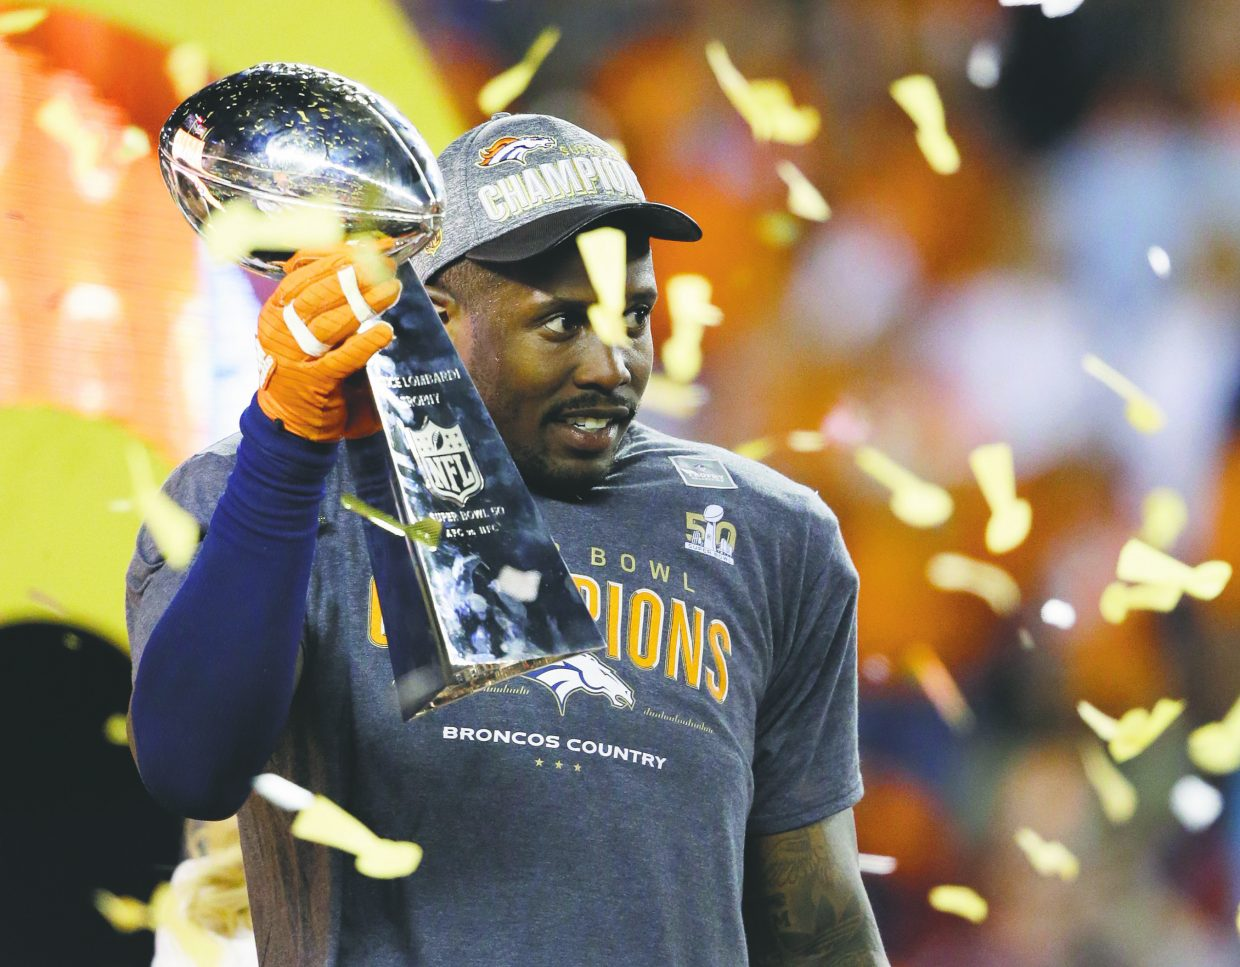 Denver Broncos' Von Miller holds the trophy after the NFL Super Bowl 50 football game Sunday, Feb. 7, 2016, in Santa Clara, Calif. The Broncos won 24-10. (AP Photo/Ben Margot)